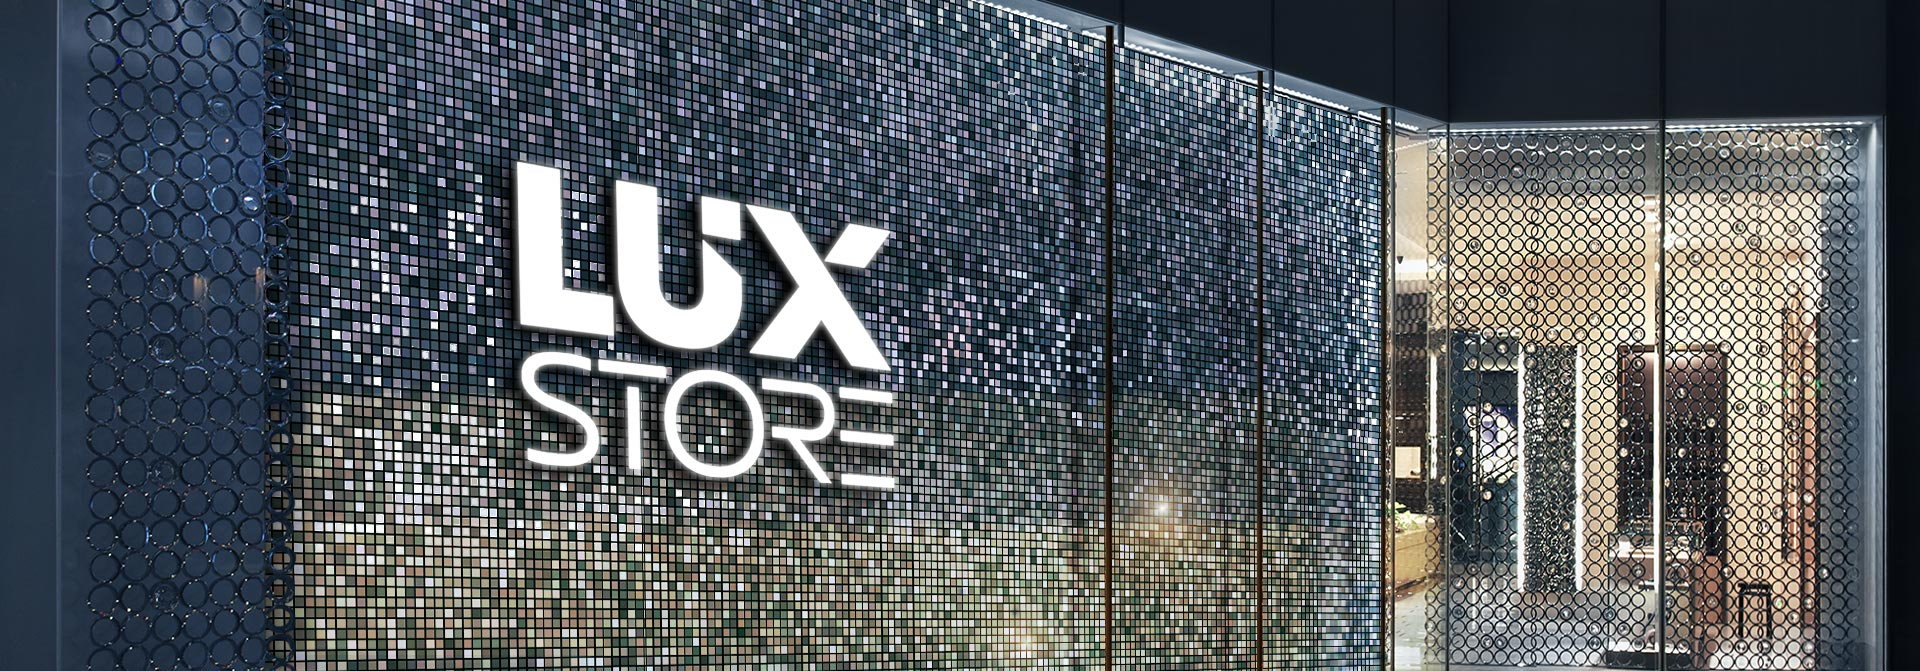 Lux Store shimmer wall with a brand name signage